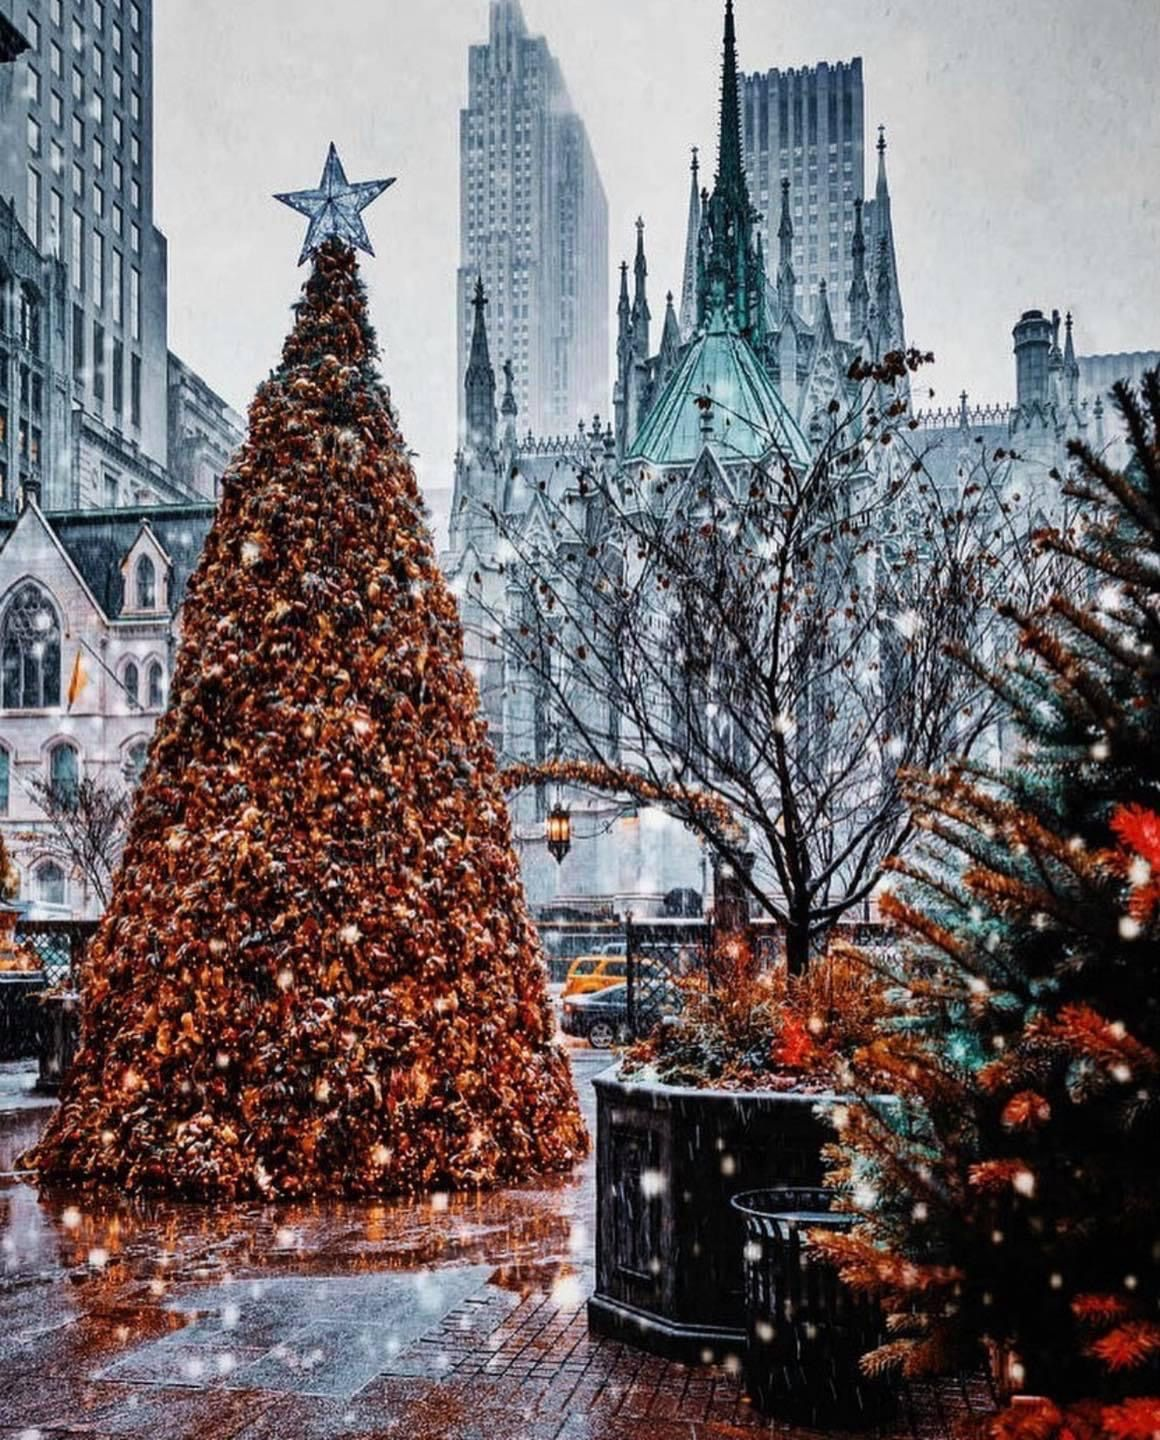 Albero Di Natale New York 2020.Pin By Lady Chatterley On I M In A New York State Of Mind In 2020 Nyc Christmas Rockefeller Center Christmas Rockefeller Center Christmas Tree